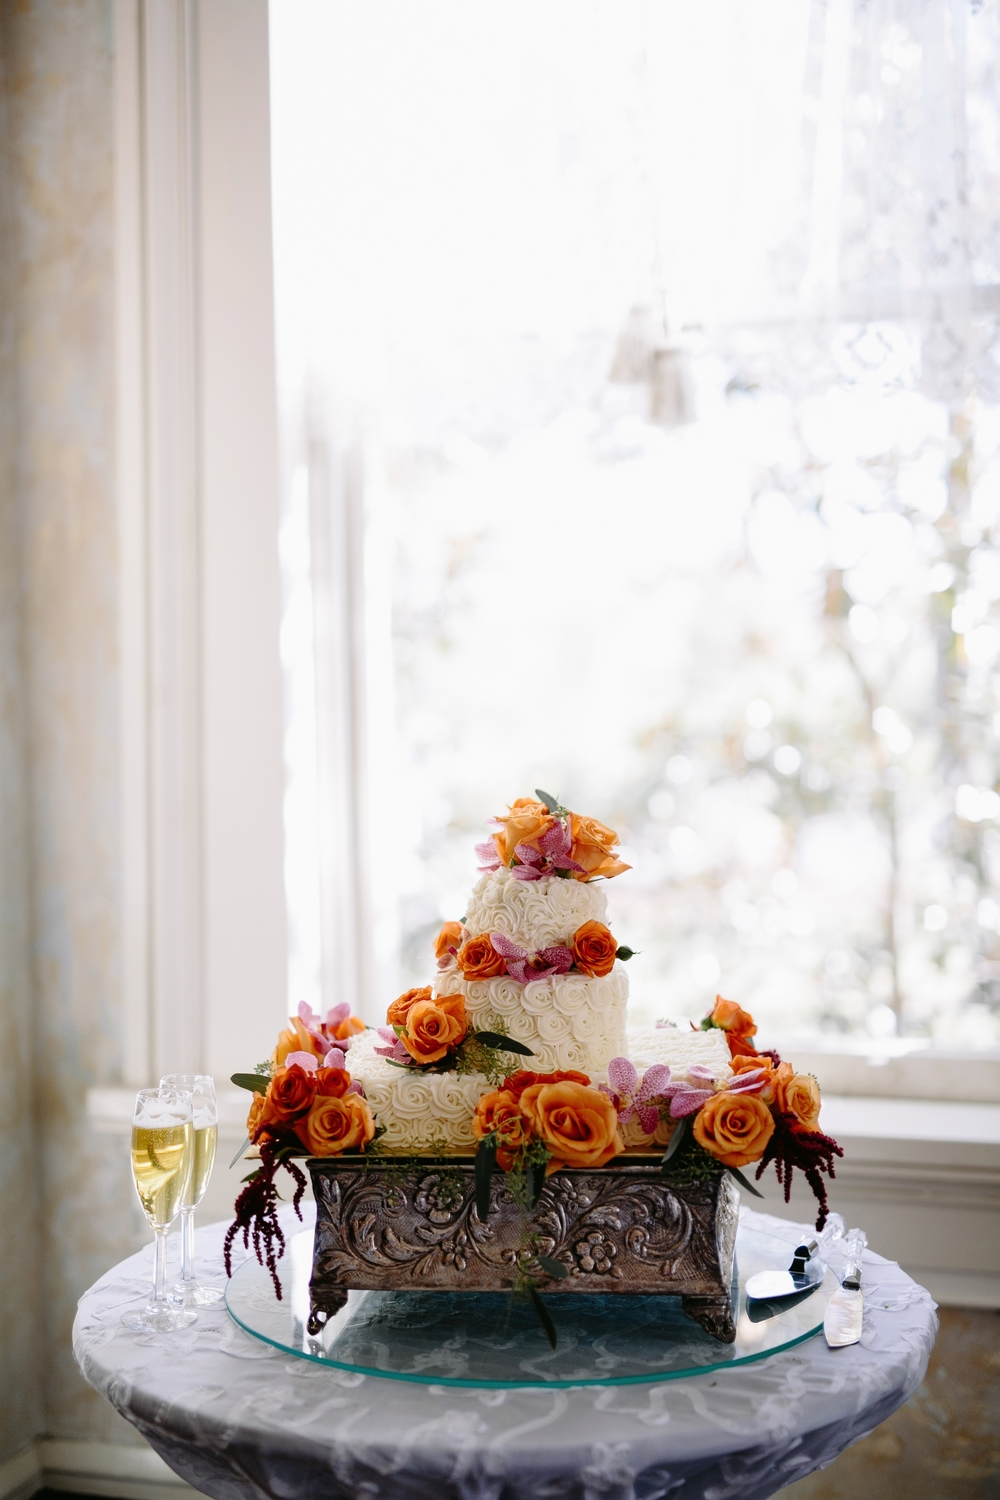 Add seasonal vibrant florals around each cake tier to add pops of color.  The popular rosette texture creates both dimension and an elegant romantic look.     Photo:  Q Avenue Photo